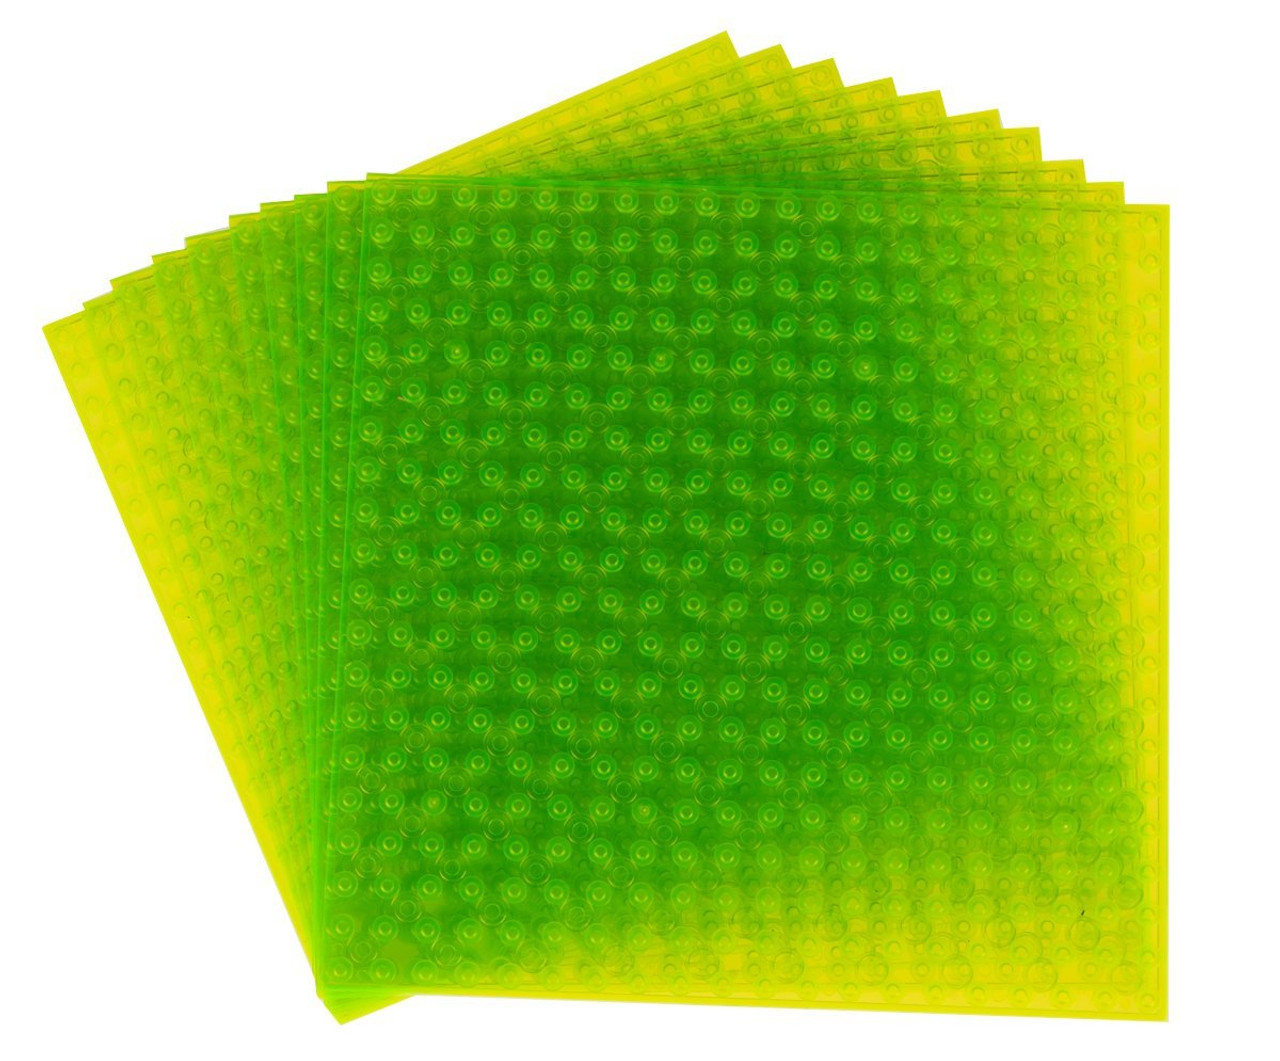 10 Stackable Bases /& 40 stackers in Light Green Building Bricks for Towers Strictly Briks Classic Baseplates 6 x 6 Building Brick Baseplates Compatible with All Major Brands